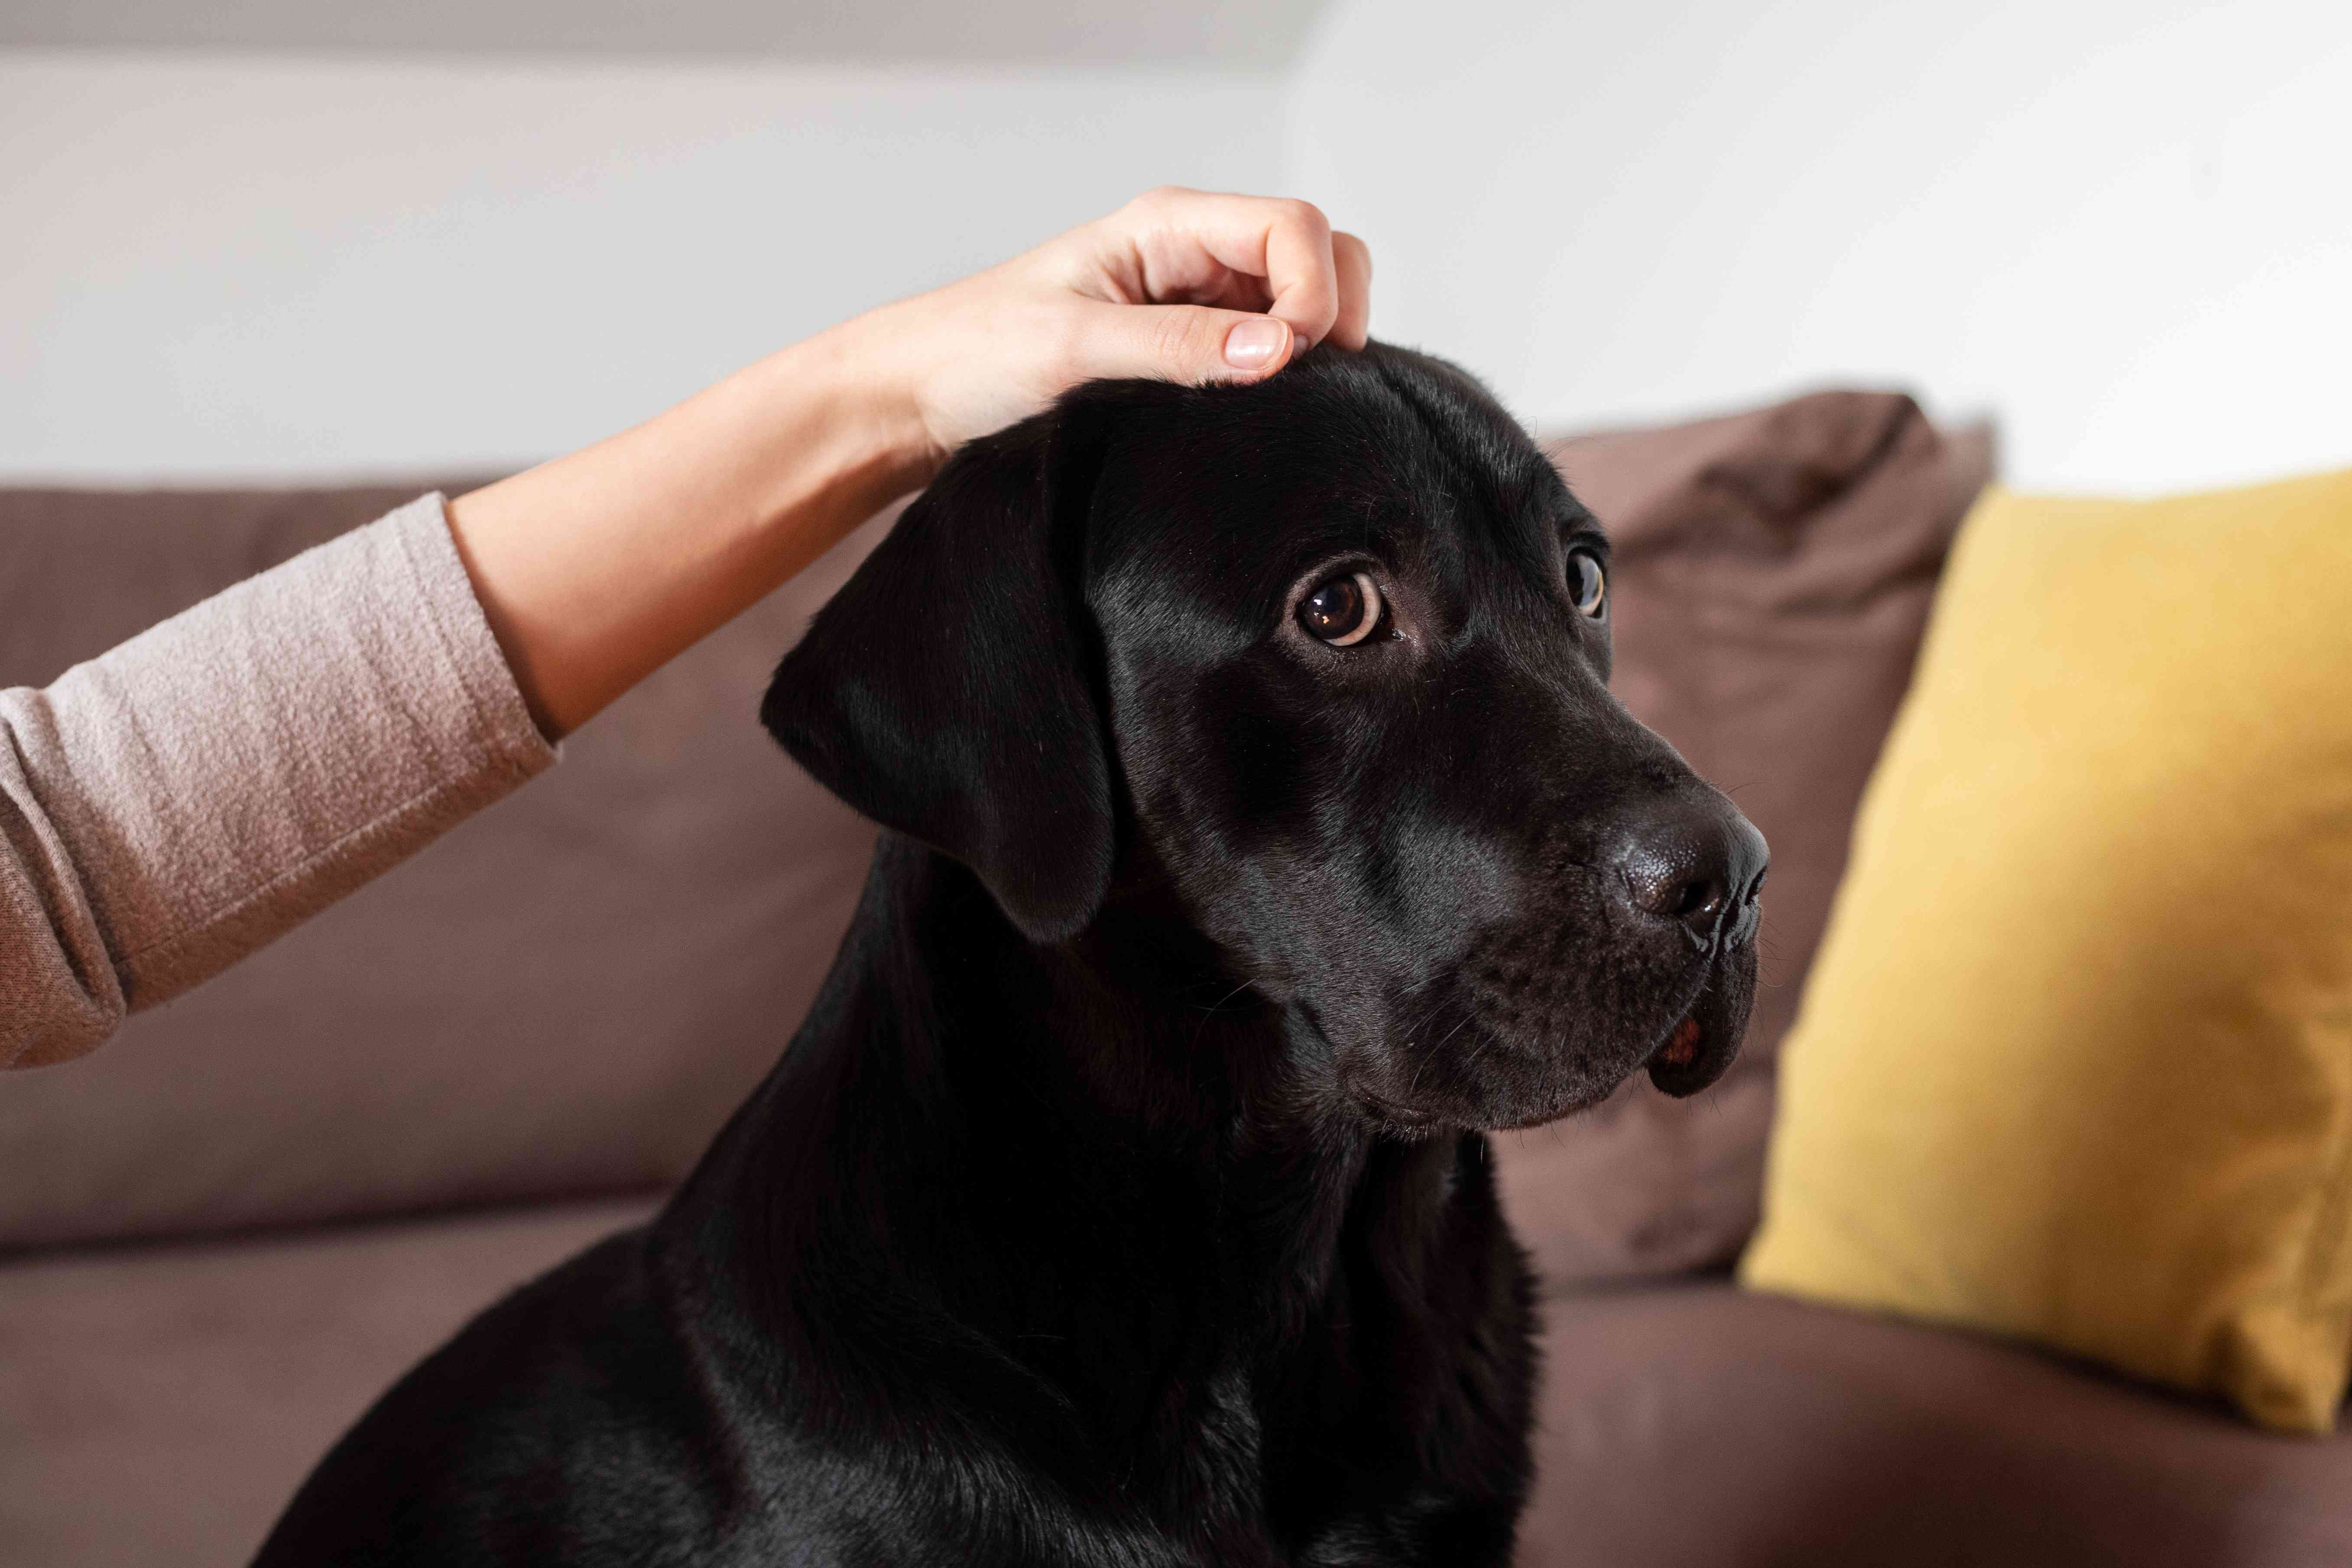 dog looks side eye at camera while human teases them with hand on their head